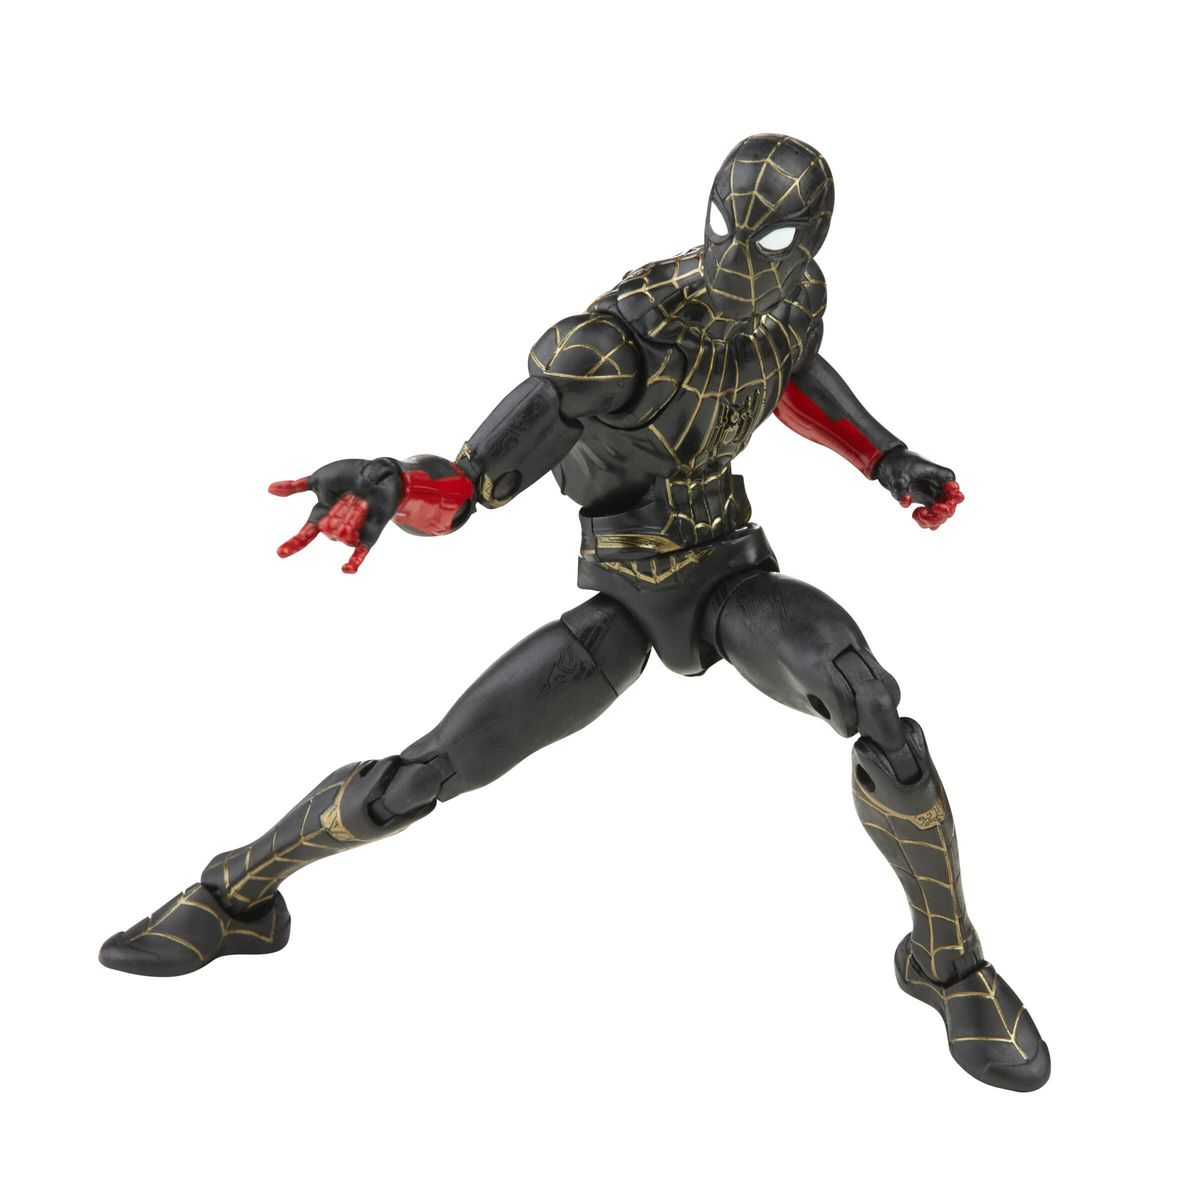 A posed action figure of Spider-Man in a black and gold suit from Spider-Man: No Way Home